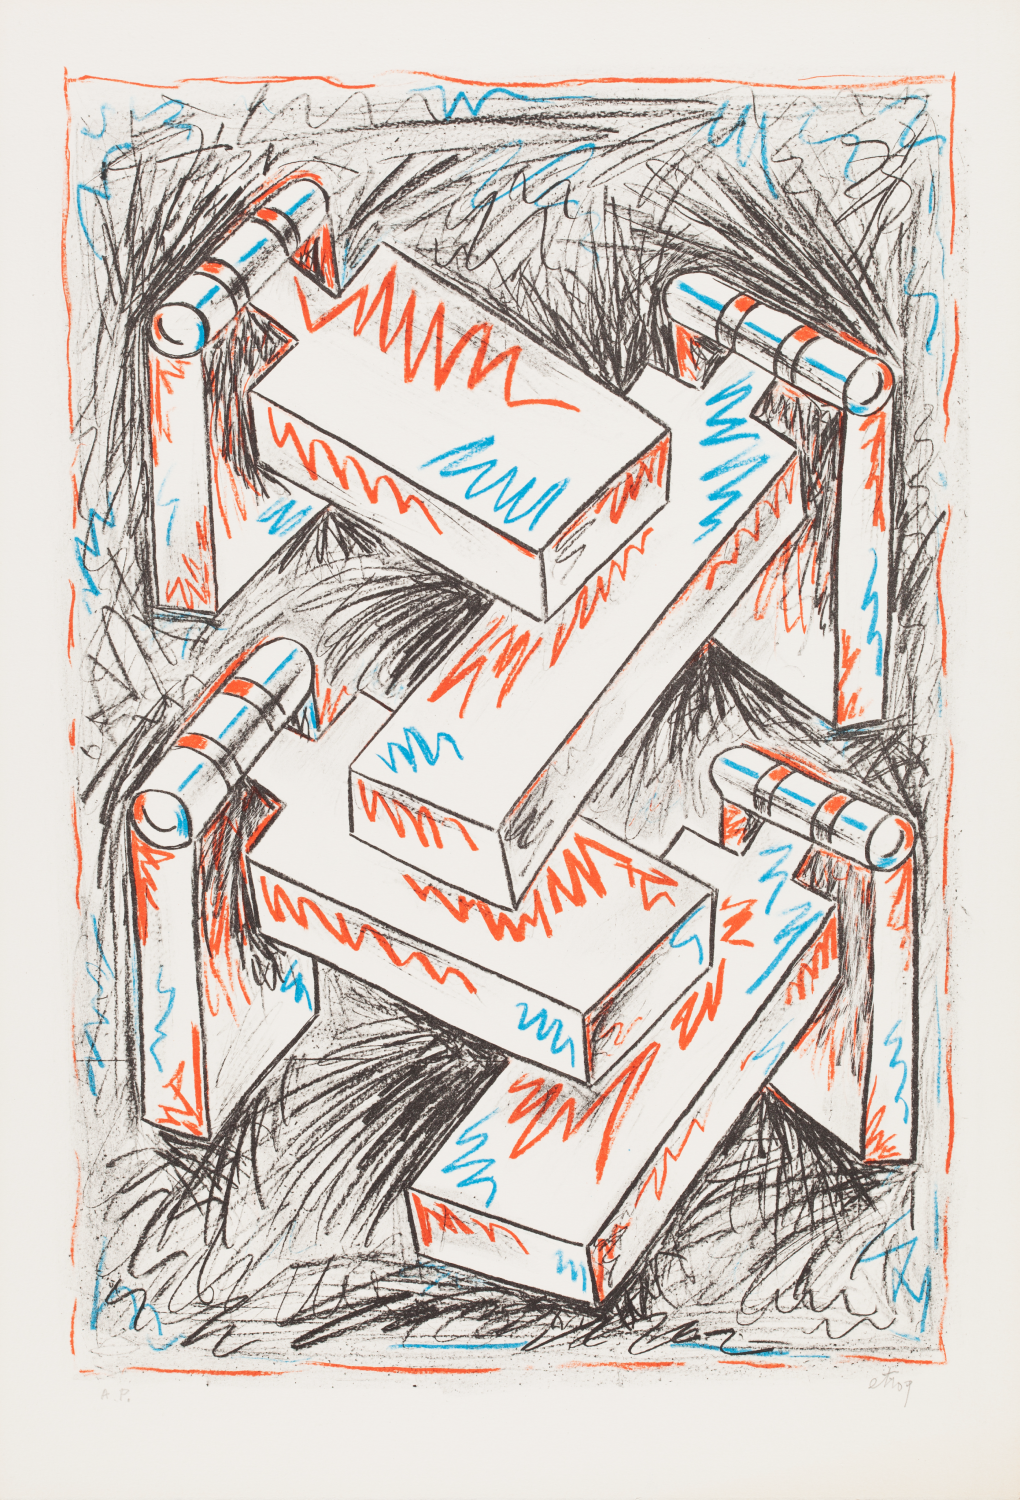 Sorel Etrog, Hingescape I, 1978, lithograph on paper, A.P. Collection of the MacLaren Art Centre. Gift of the artist, 1999. Photo: Andre Beneteau